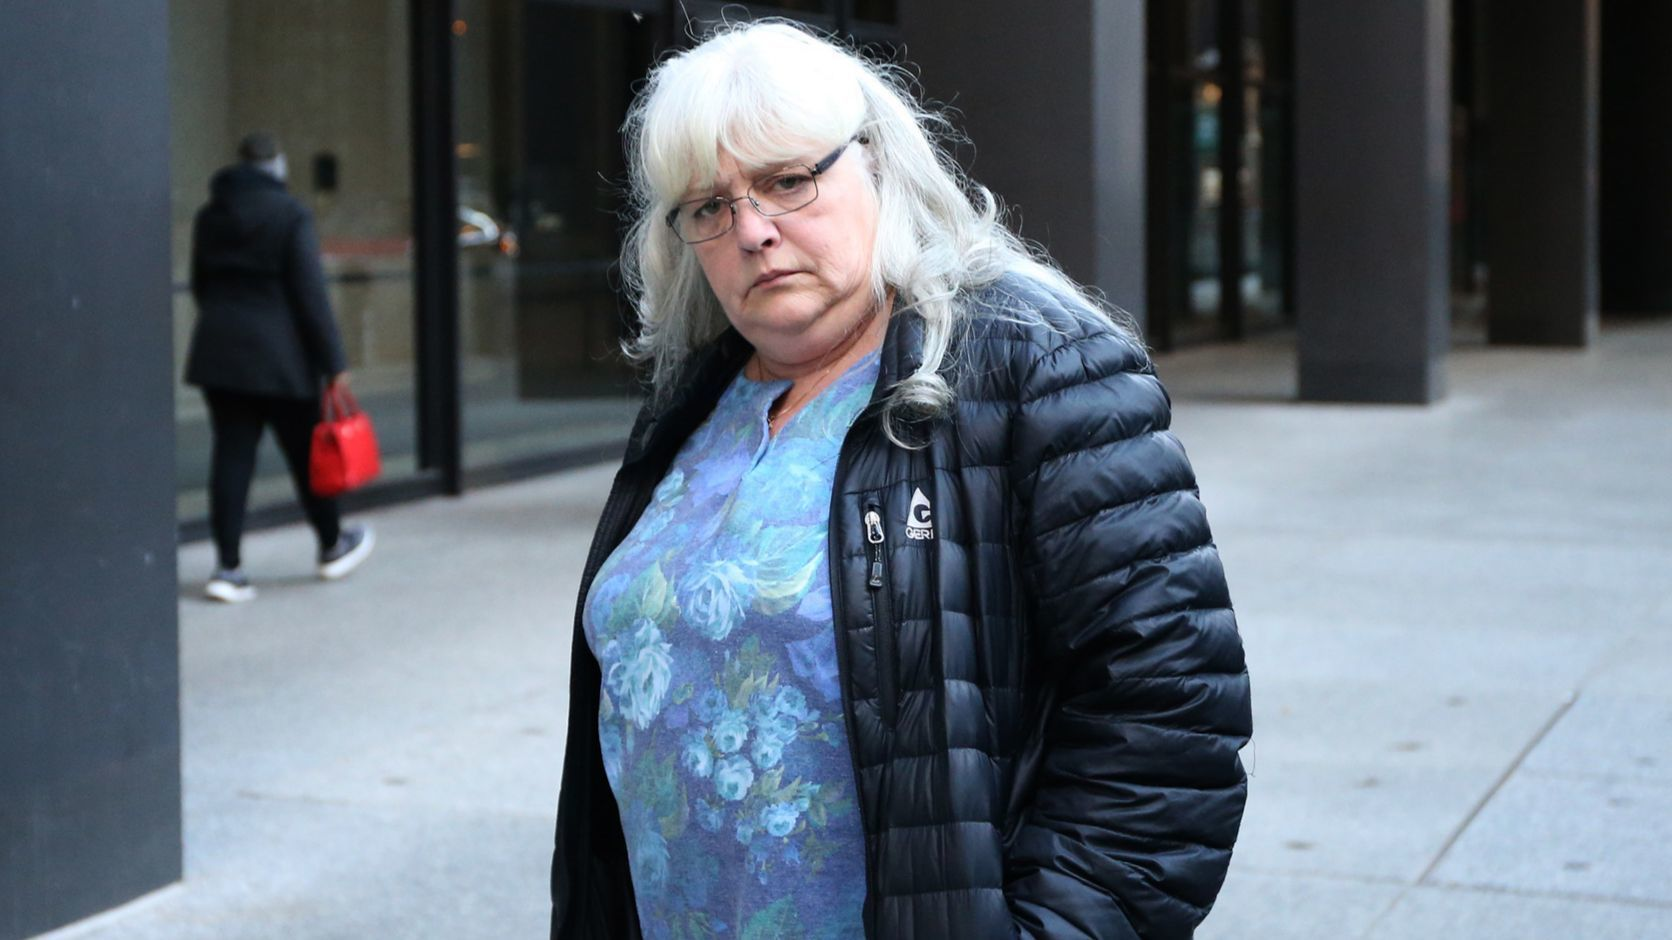 Bookkeeper given 28 months in prison for theft of $600,000 from Blackbird, Avec restaurants